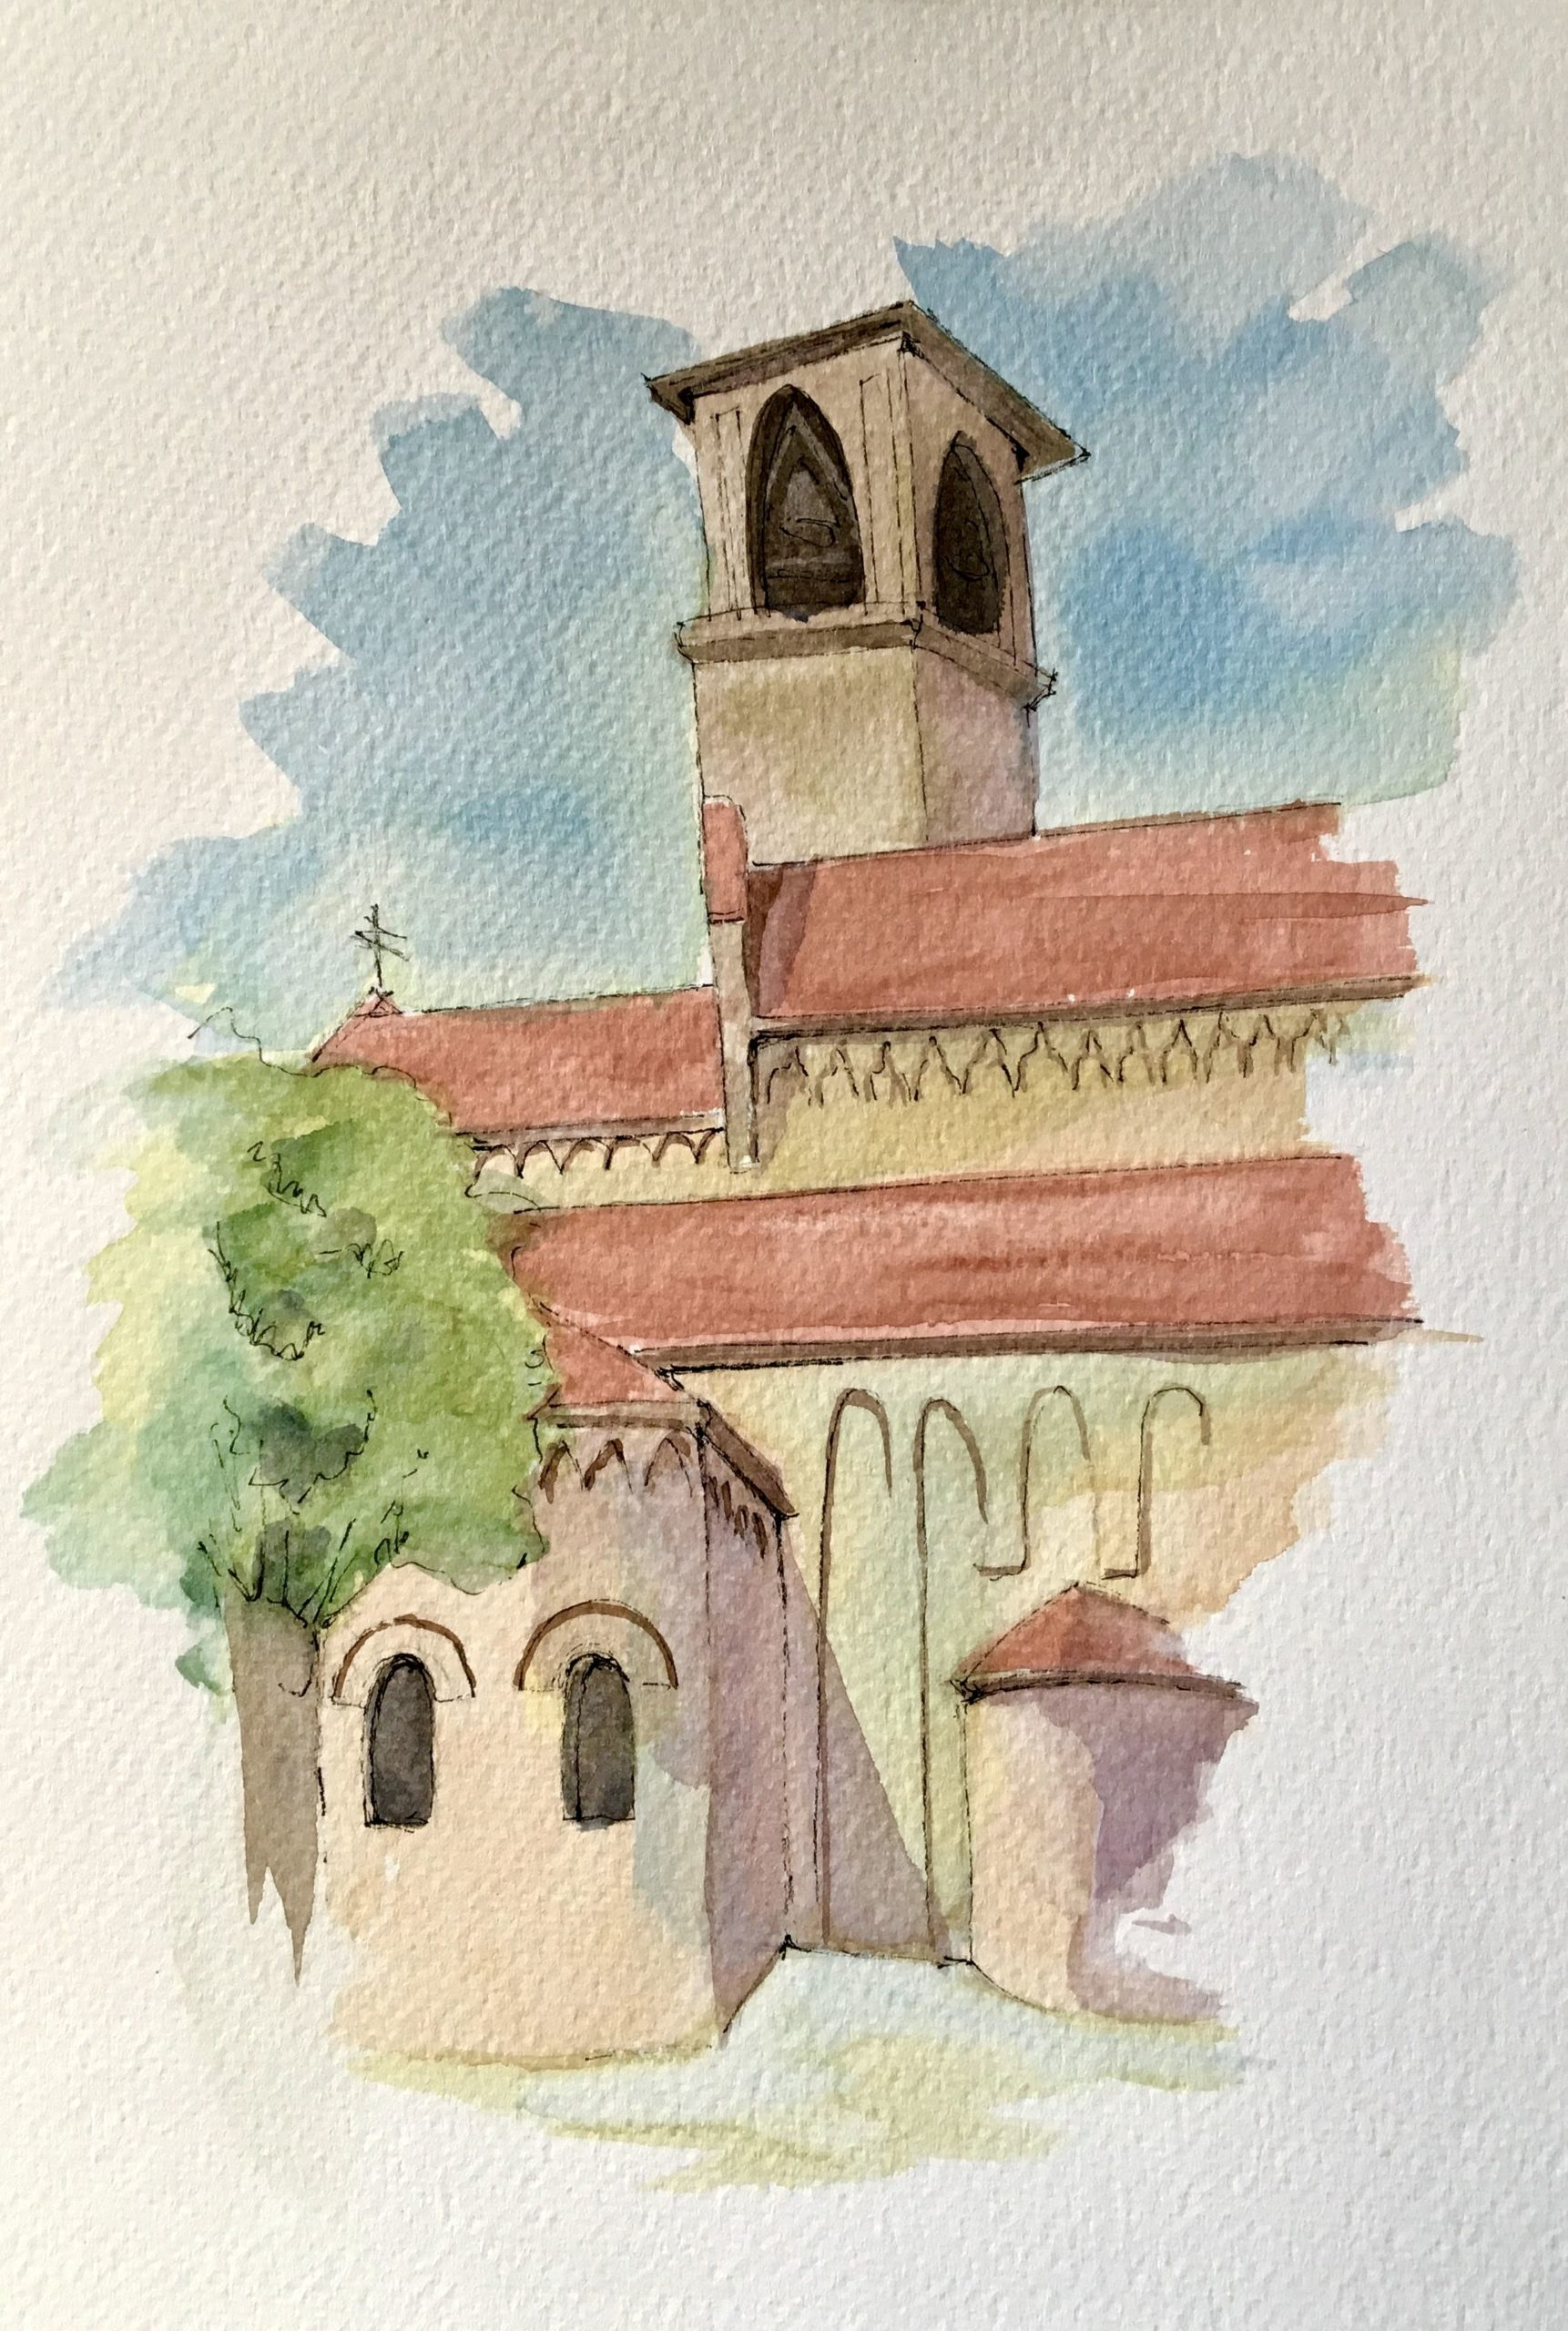 Painting of the Cathedral of S. Maria Maggiore in Spilimbergo